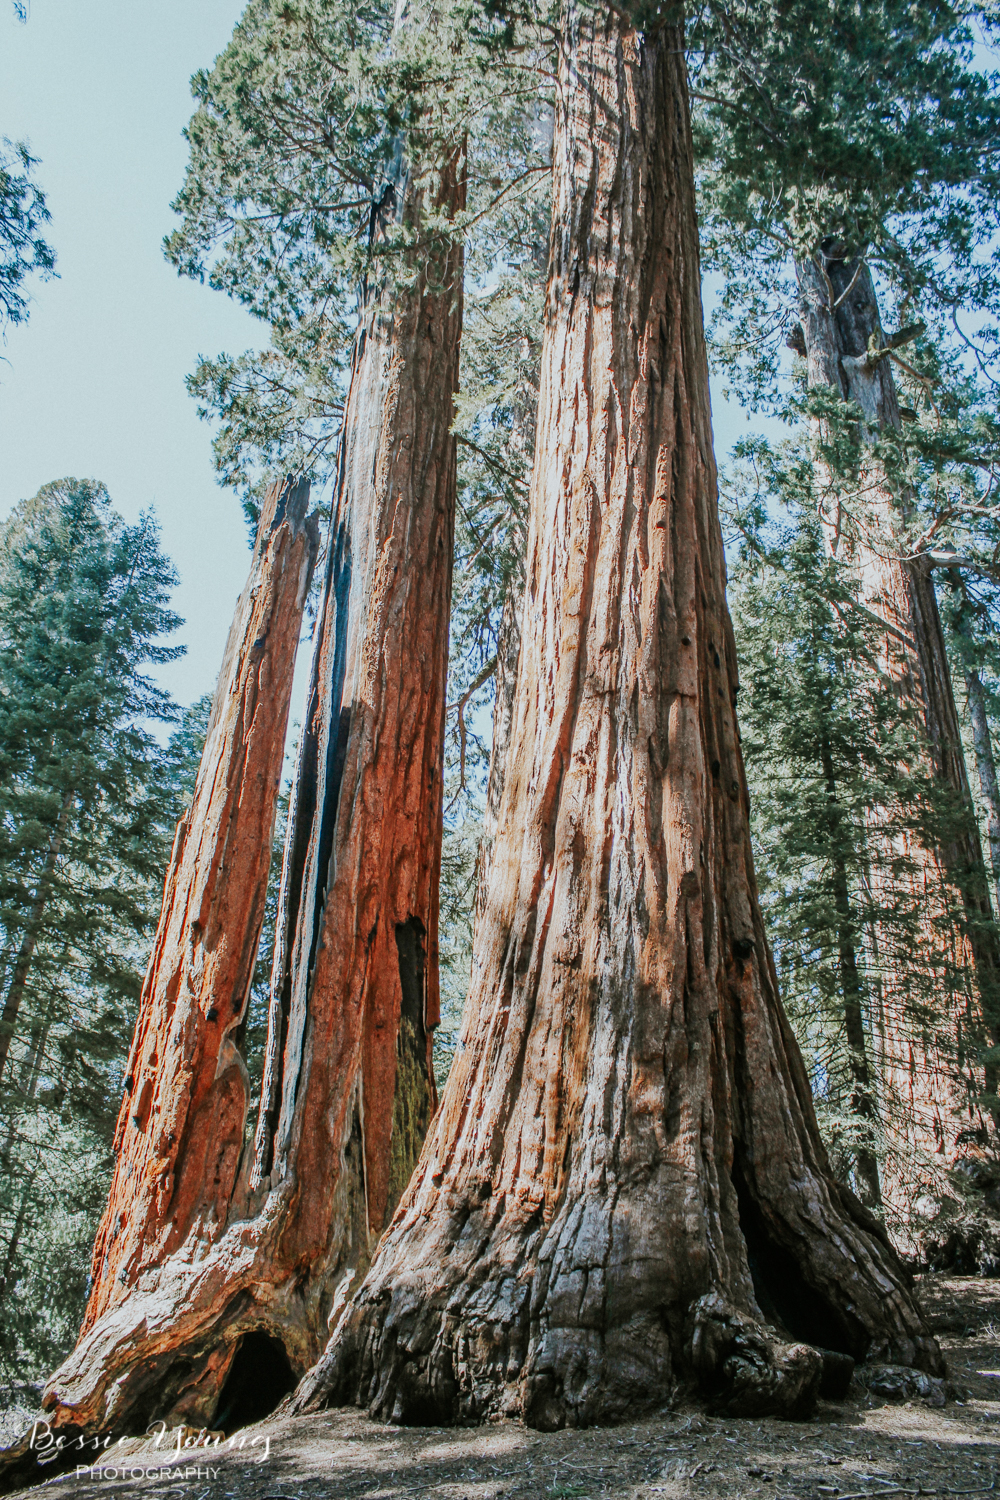 California National Parks List by Adventuring of a Small Town Girl (ASTG) - Sequoia National Park